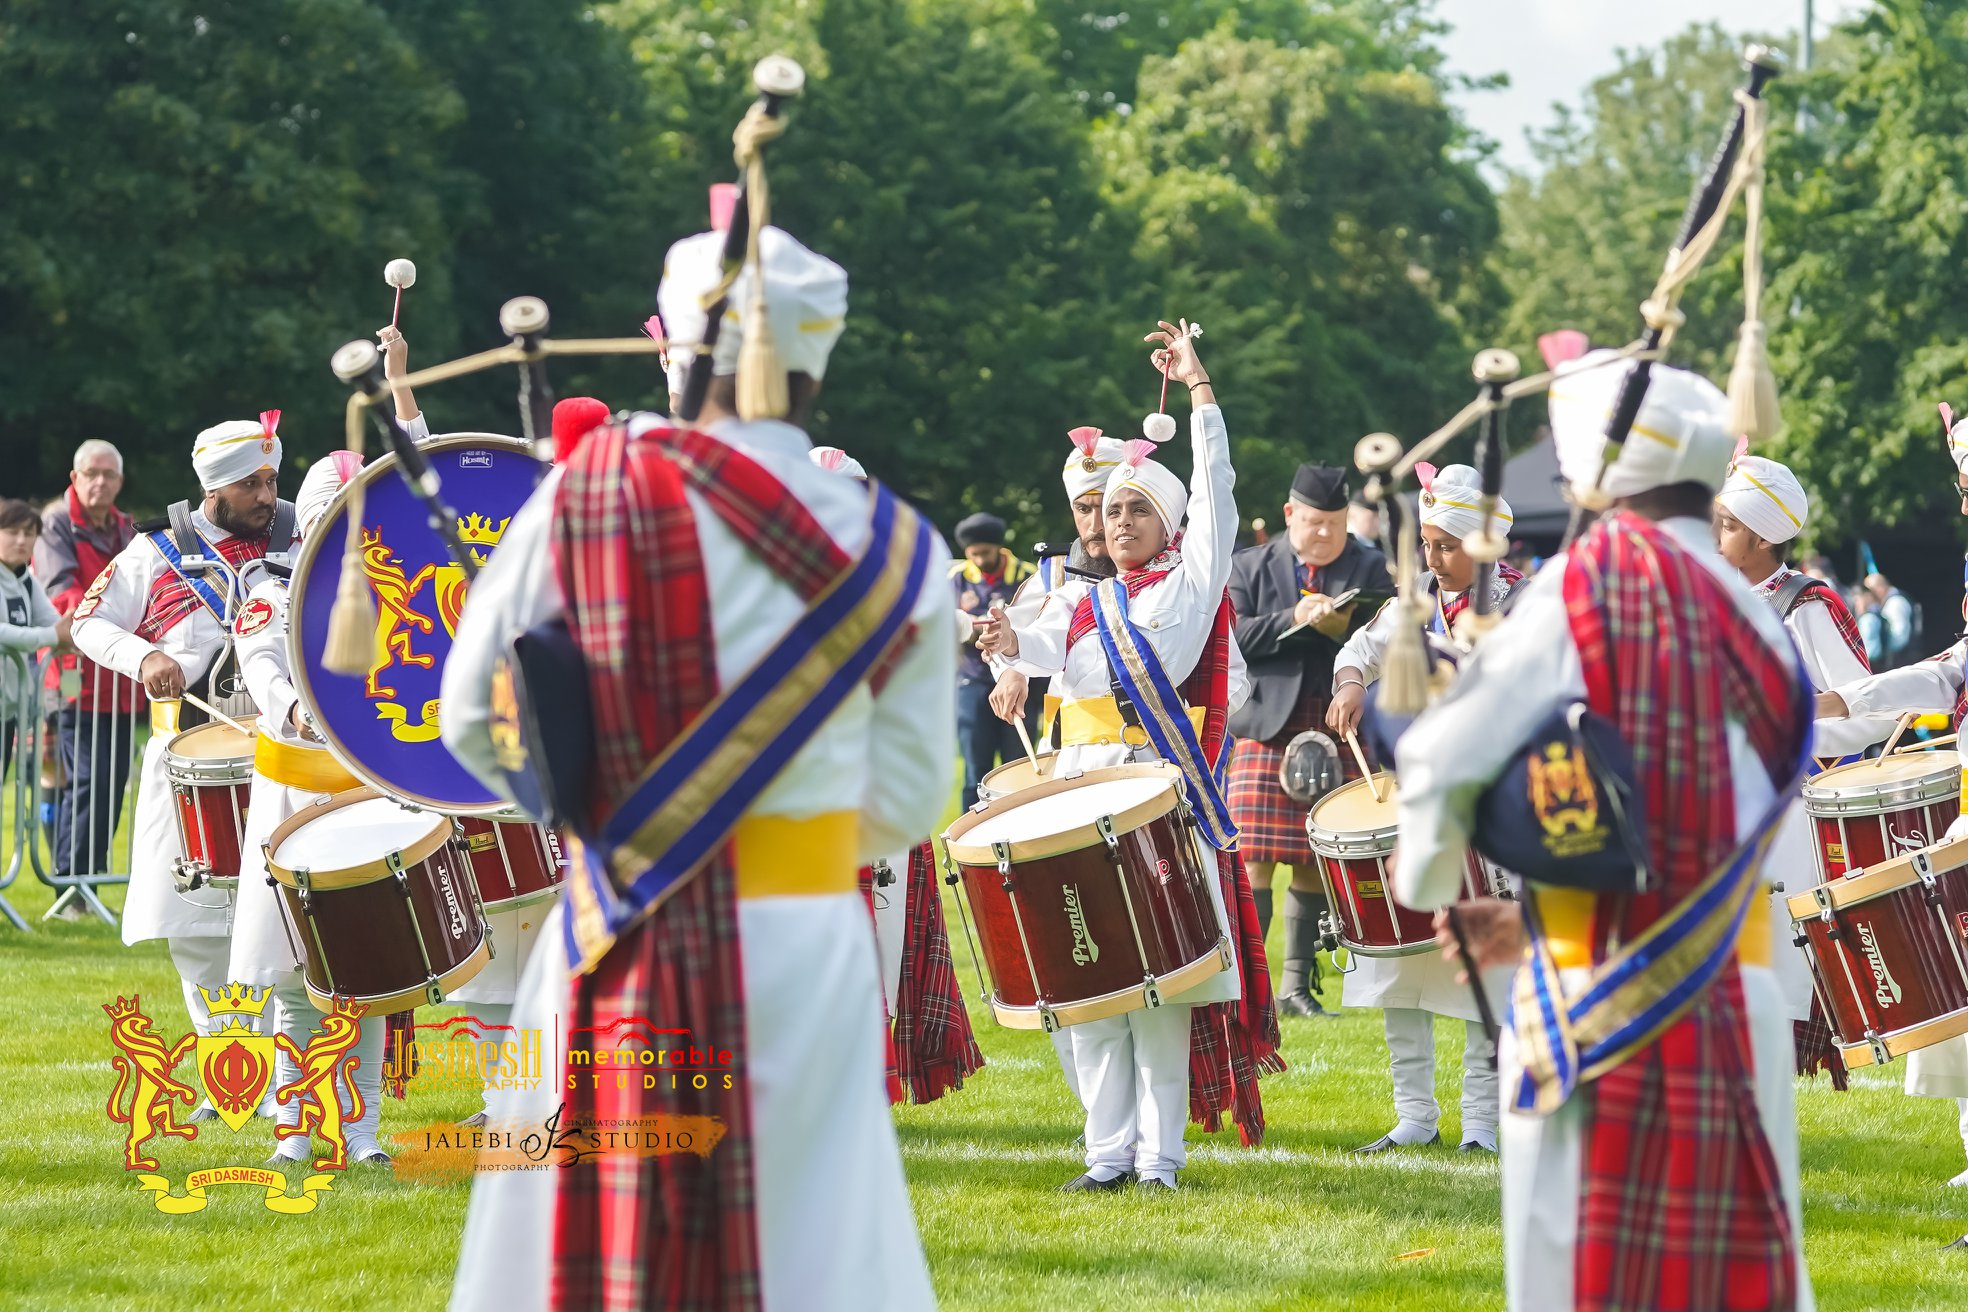 Sri Dasmesh Pipe Band at World Pipe Band Championships. Photo courtesy: Sri Dasmesh Pipe Band FB